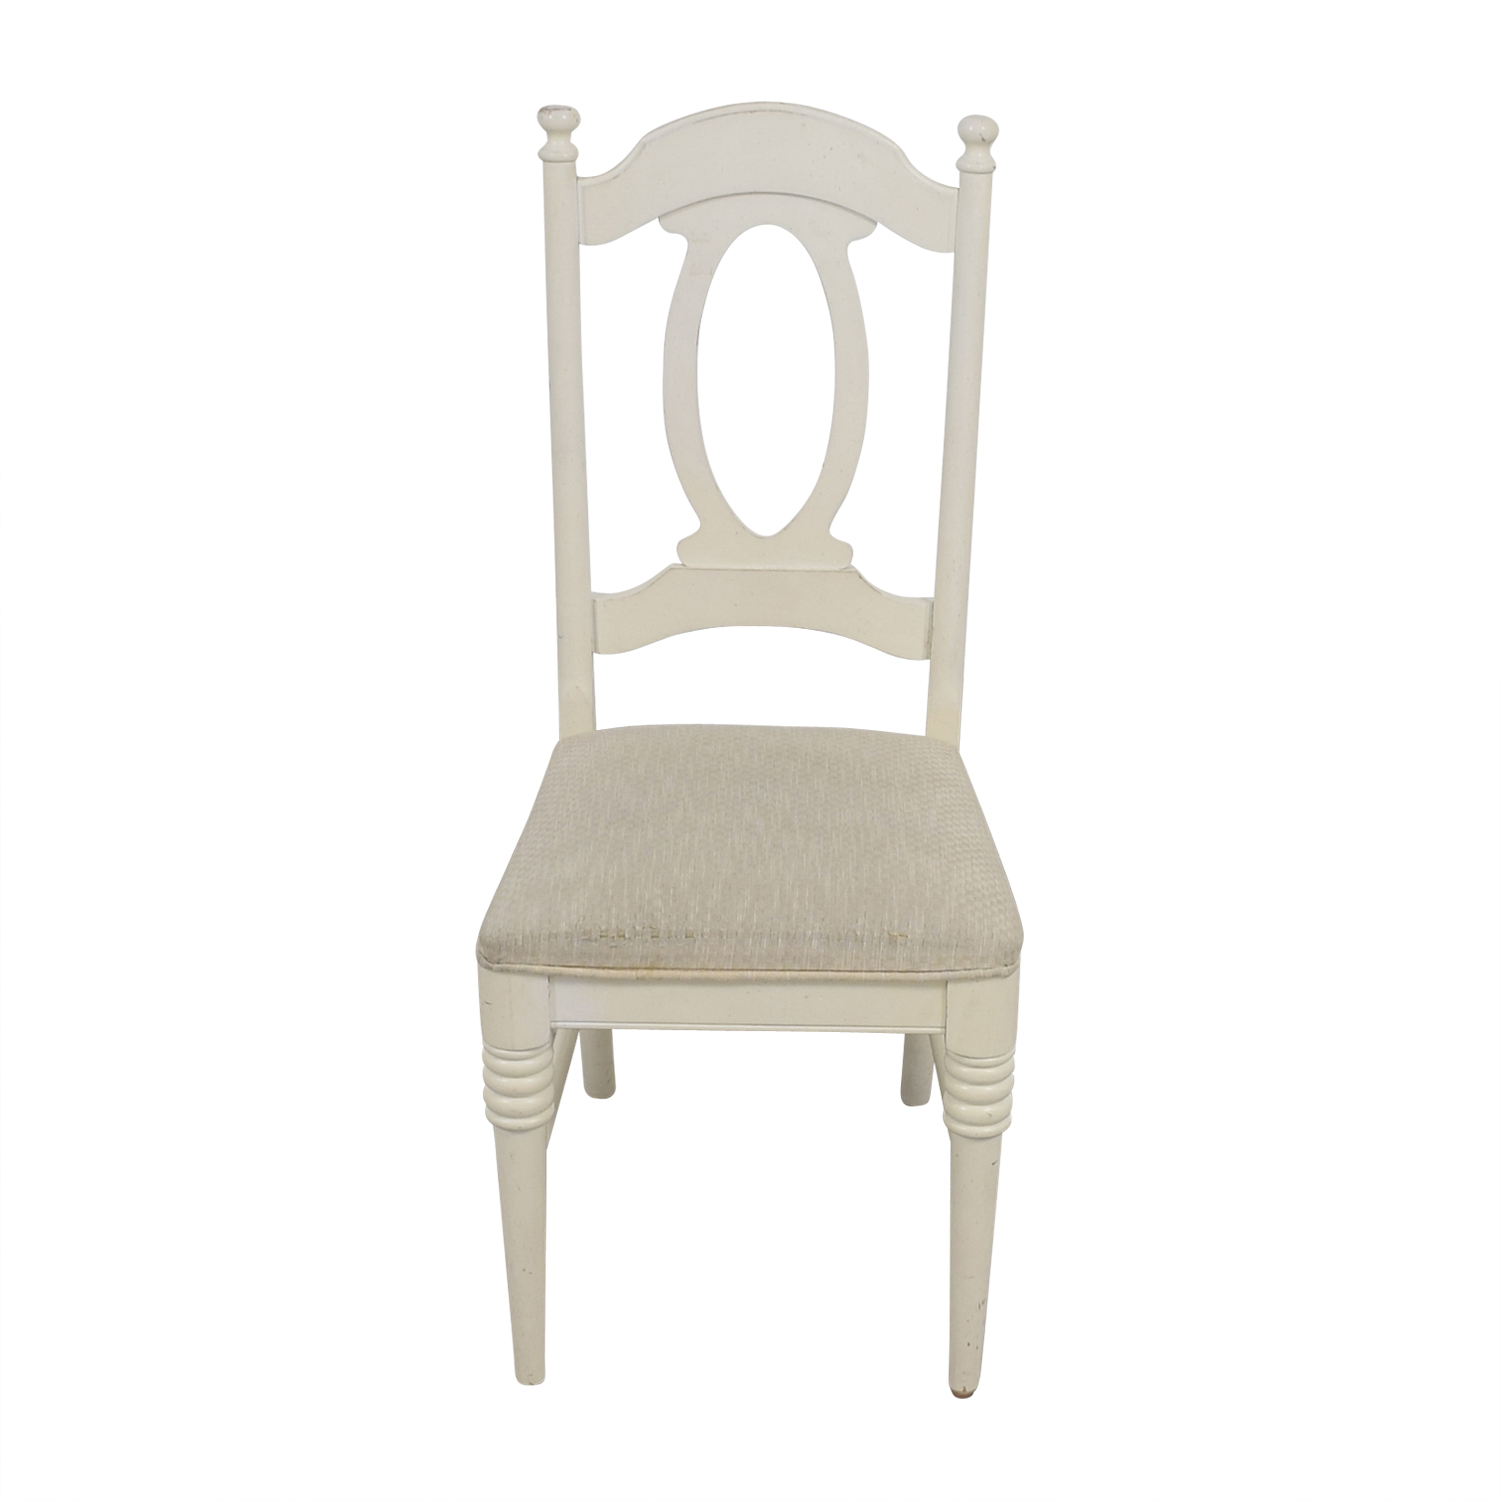 Studley Furniture Studley Furniture Classic Accent Chair discount